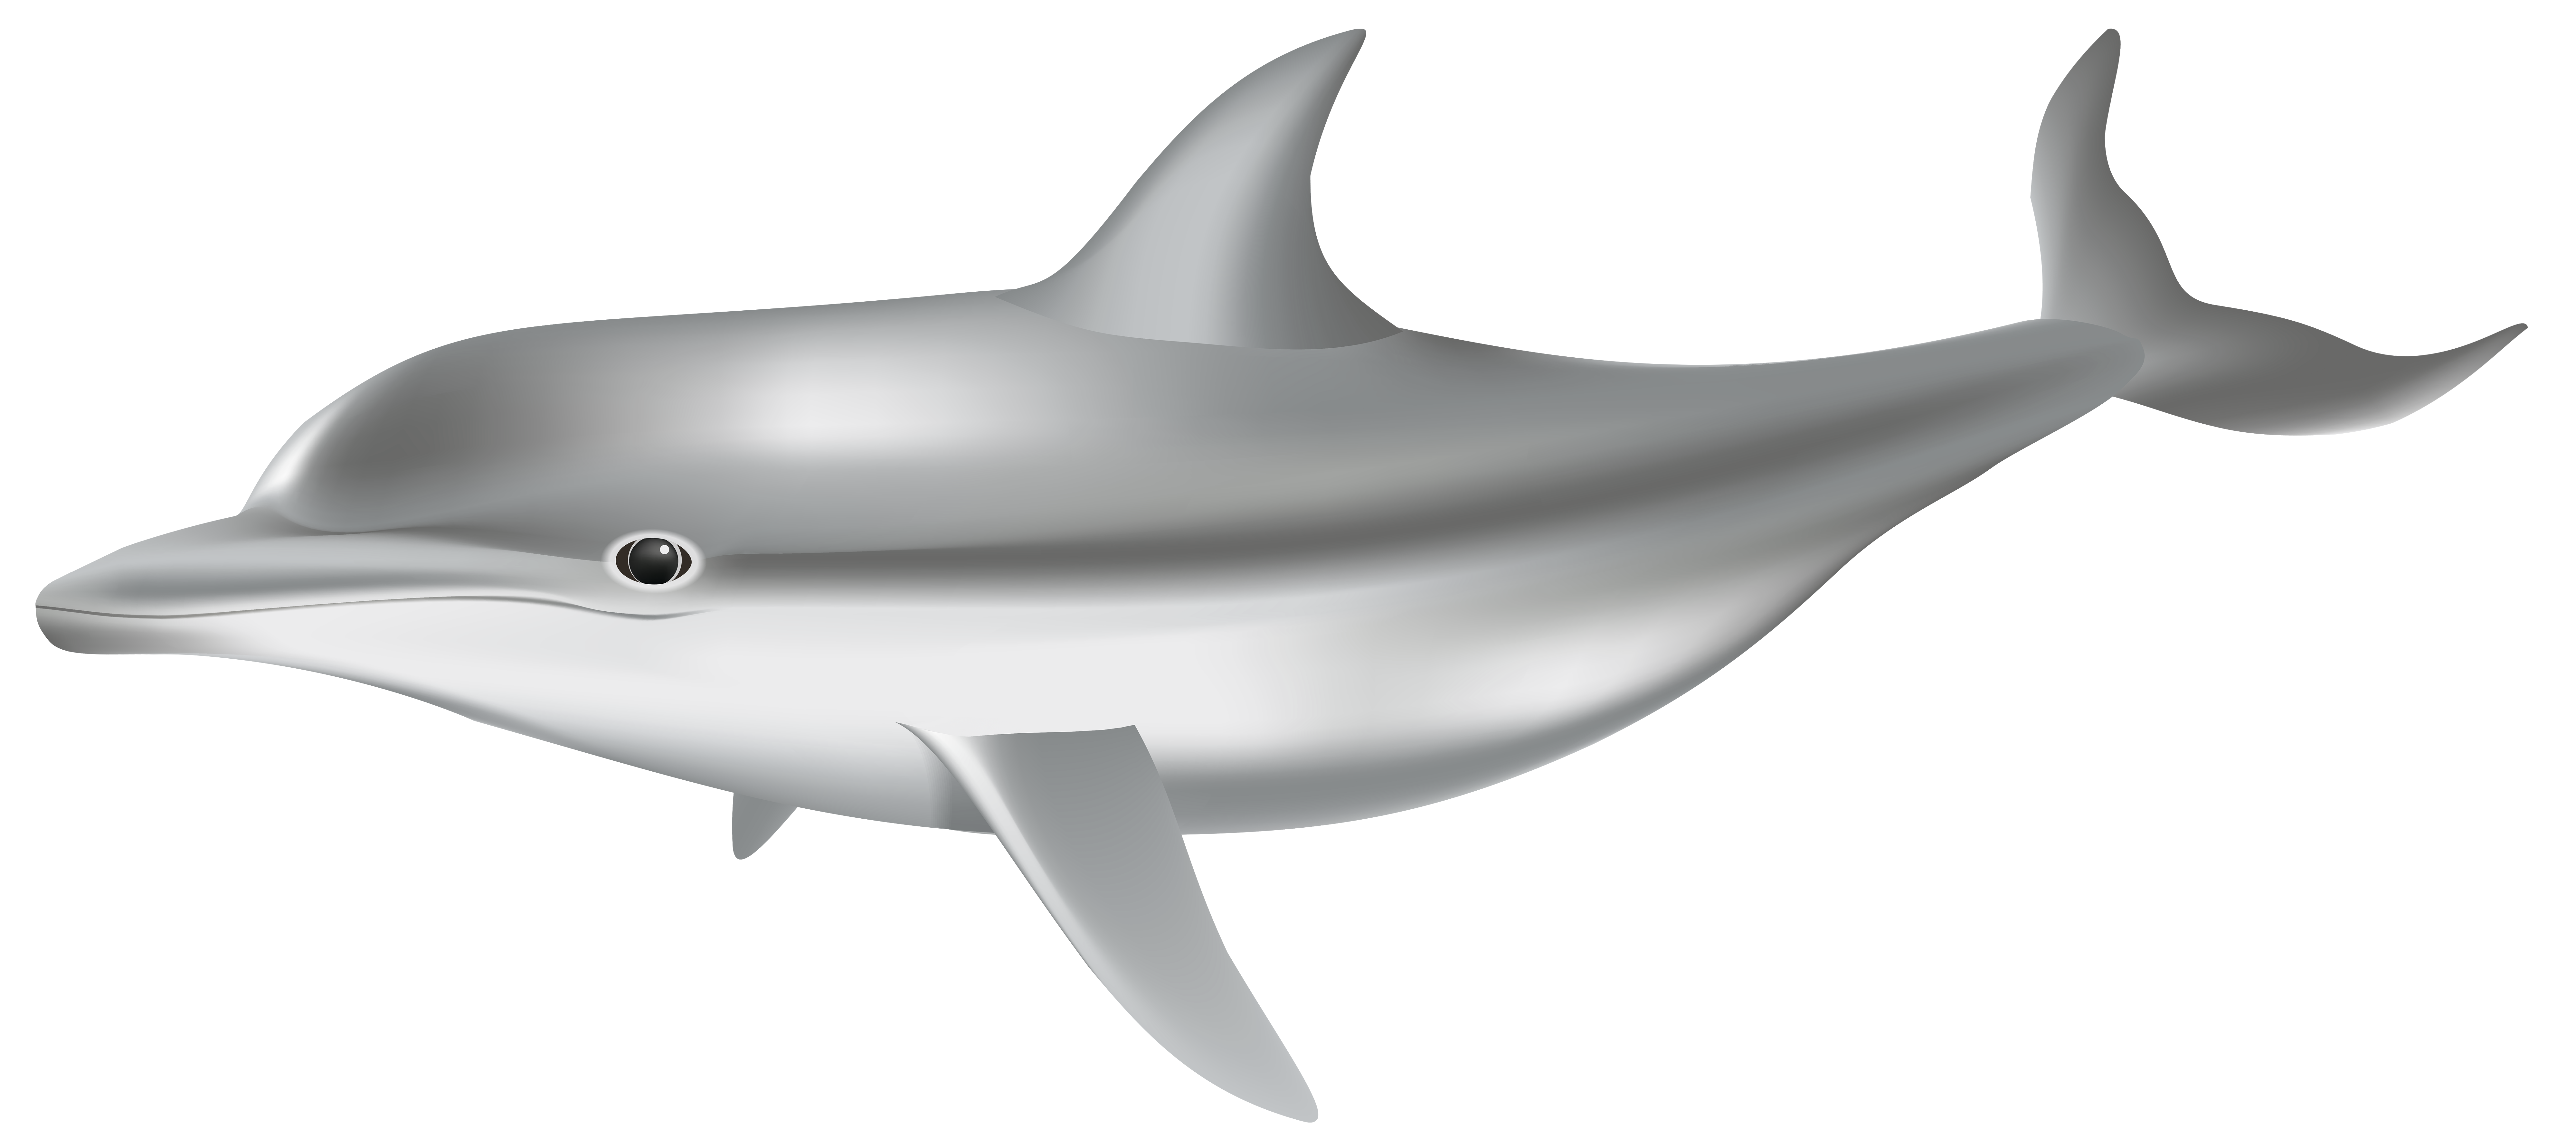 Fish underwater clipart black and white png library Dolphin PNG Transparent Clip Art Image | Gallery Yopriceville ... png library